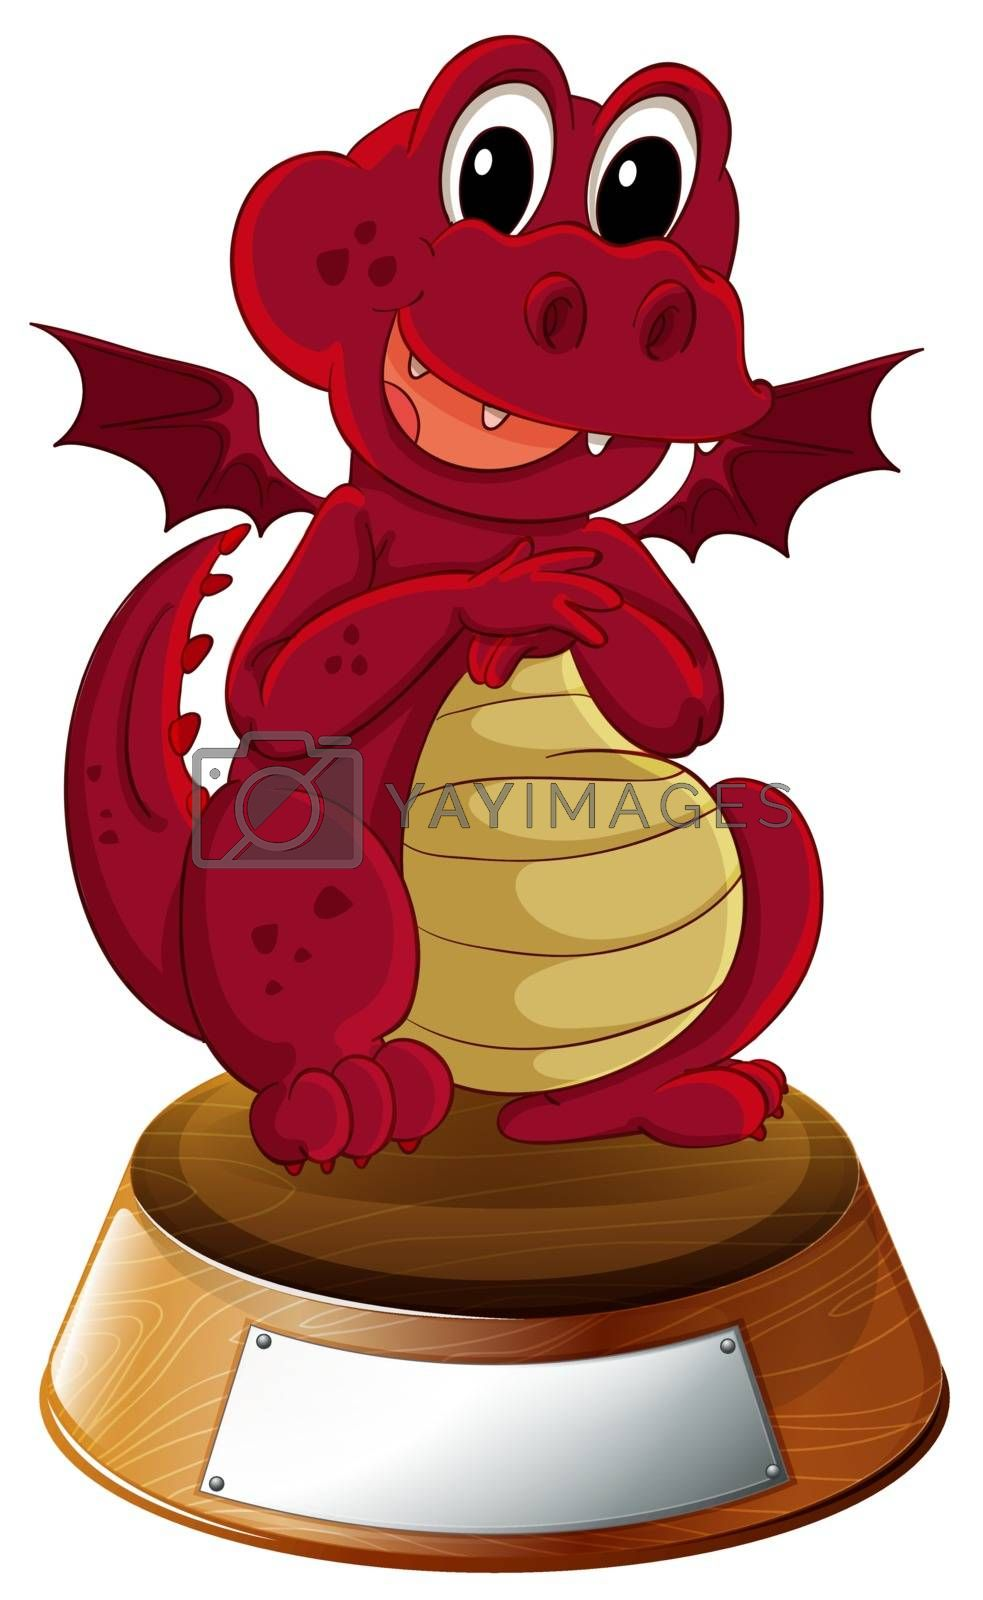 Illustration of a red dragon with an empty template at the bottom on a white background